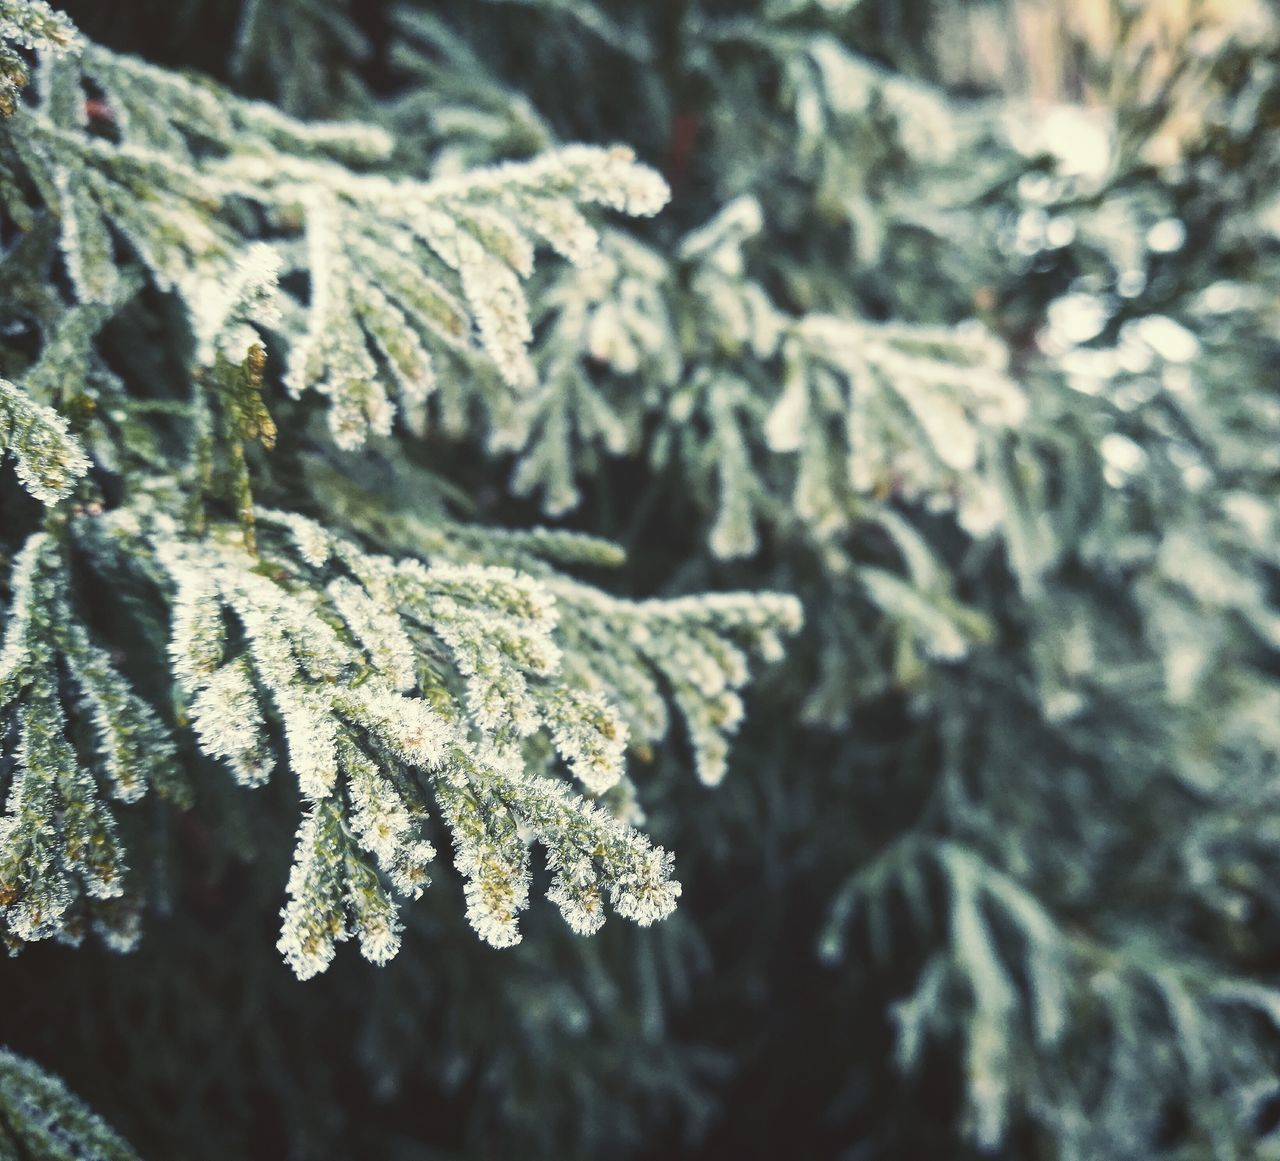 Winter Cold Temperature Nature Snow Close-up Beauty In Nature Tree Icy Crystalized